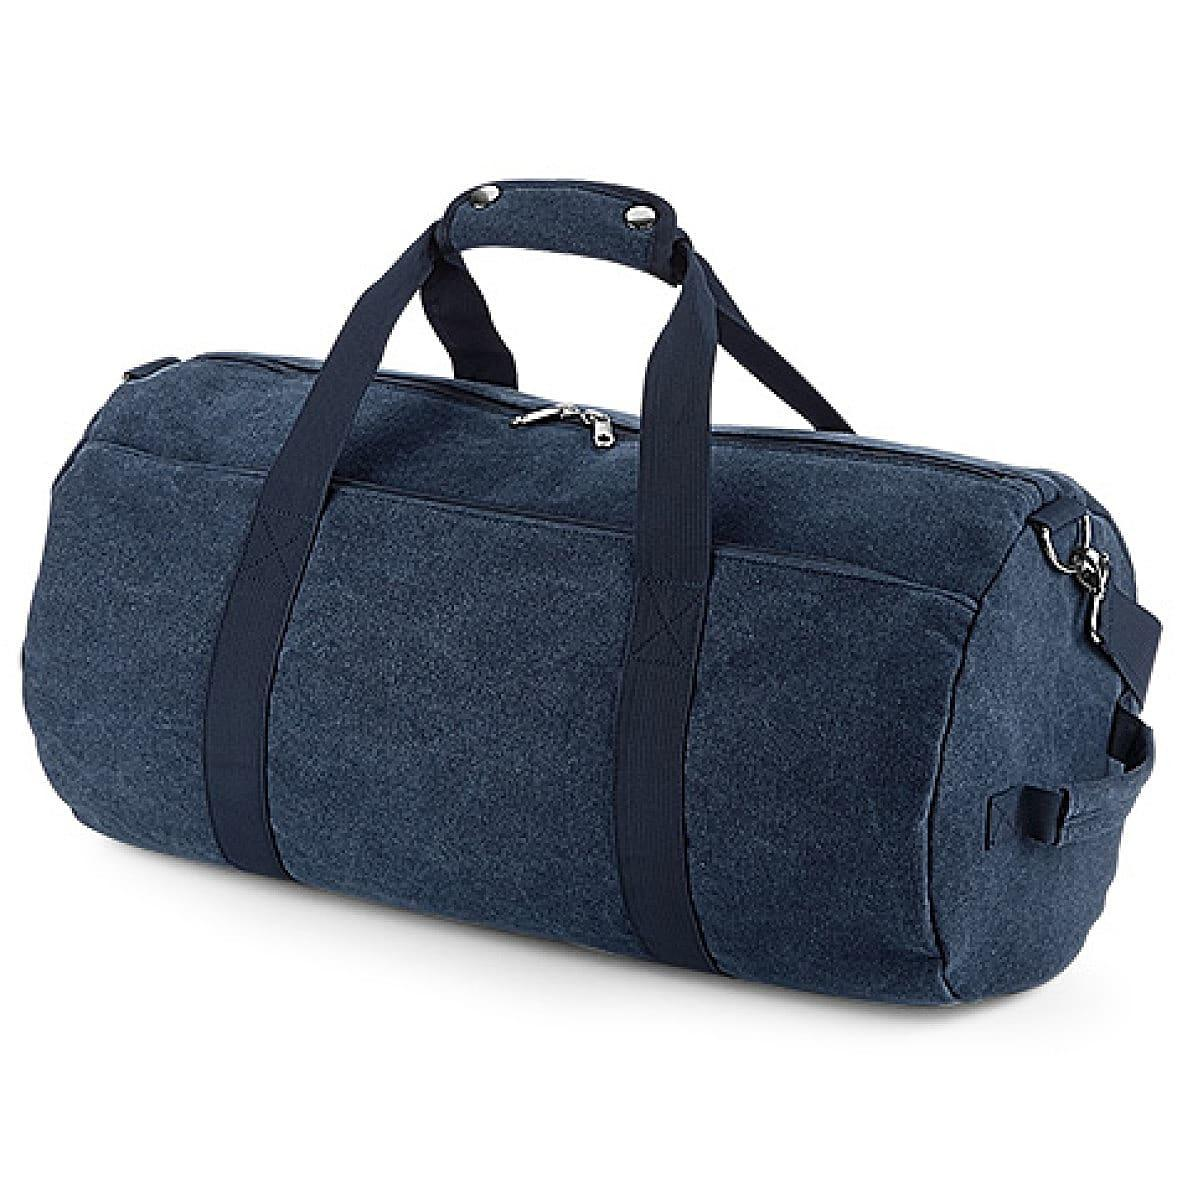 Bagbase Vintage Canval Barrel Bag in Vintage Oxford Navy (Product Code: BG655)